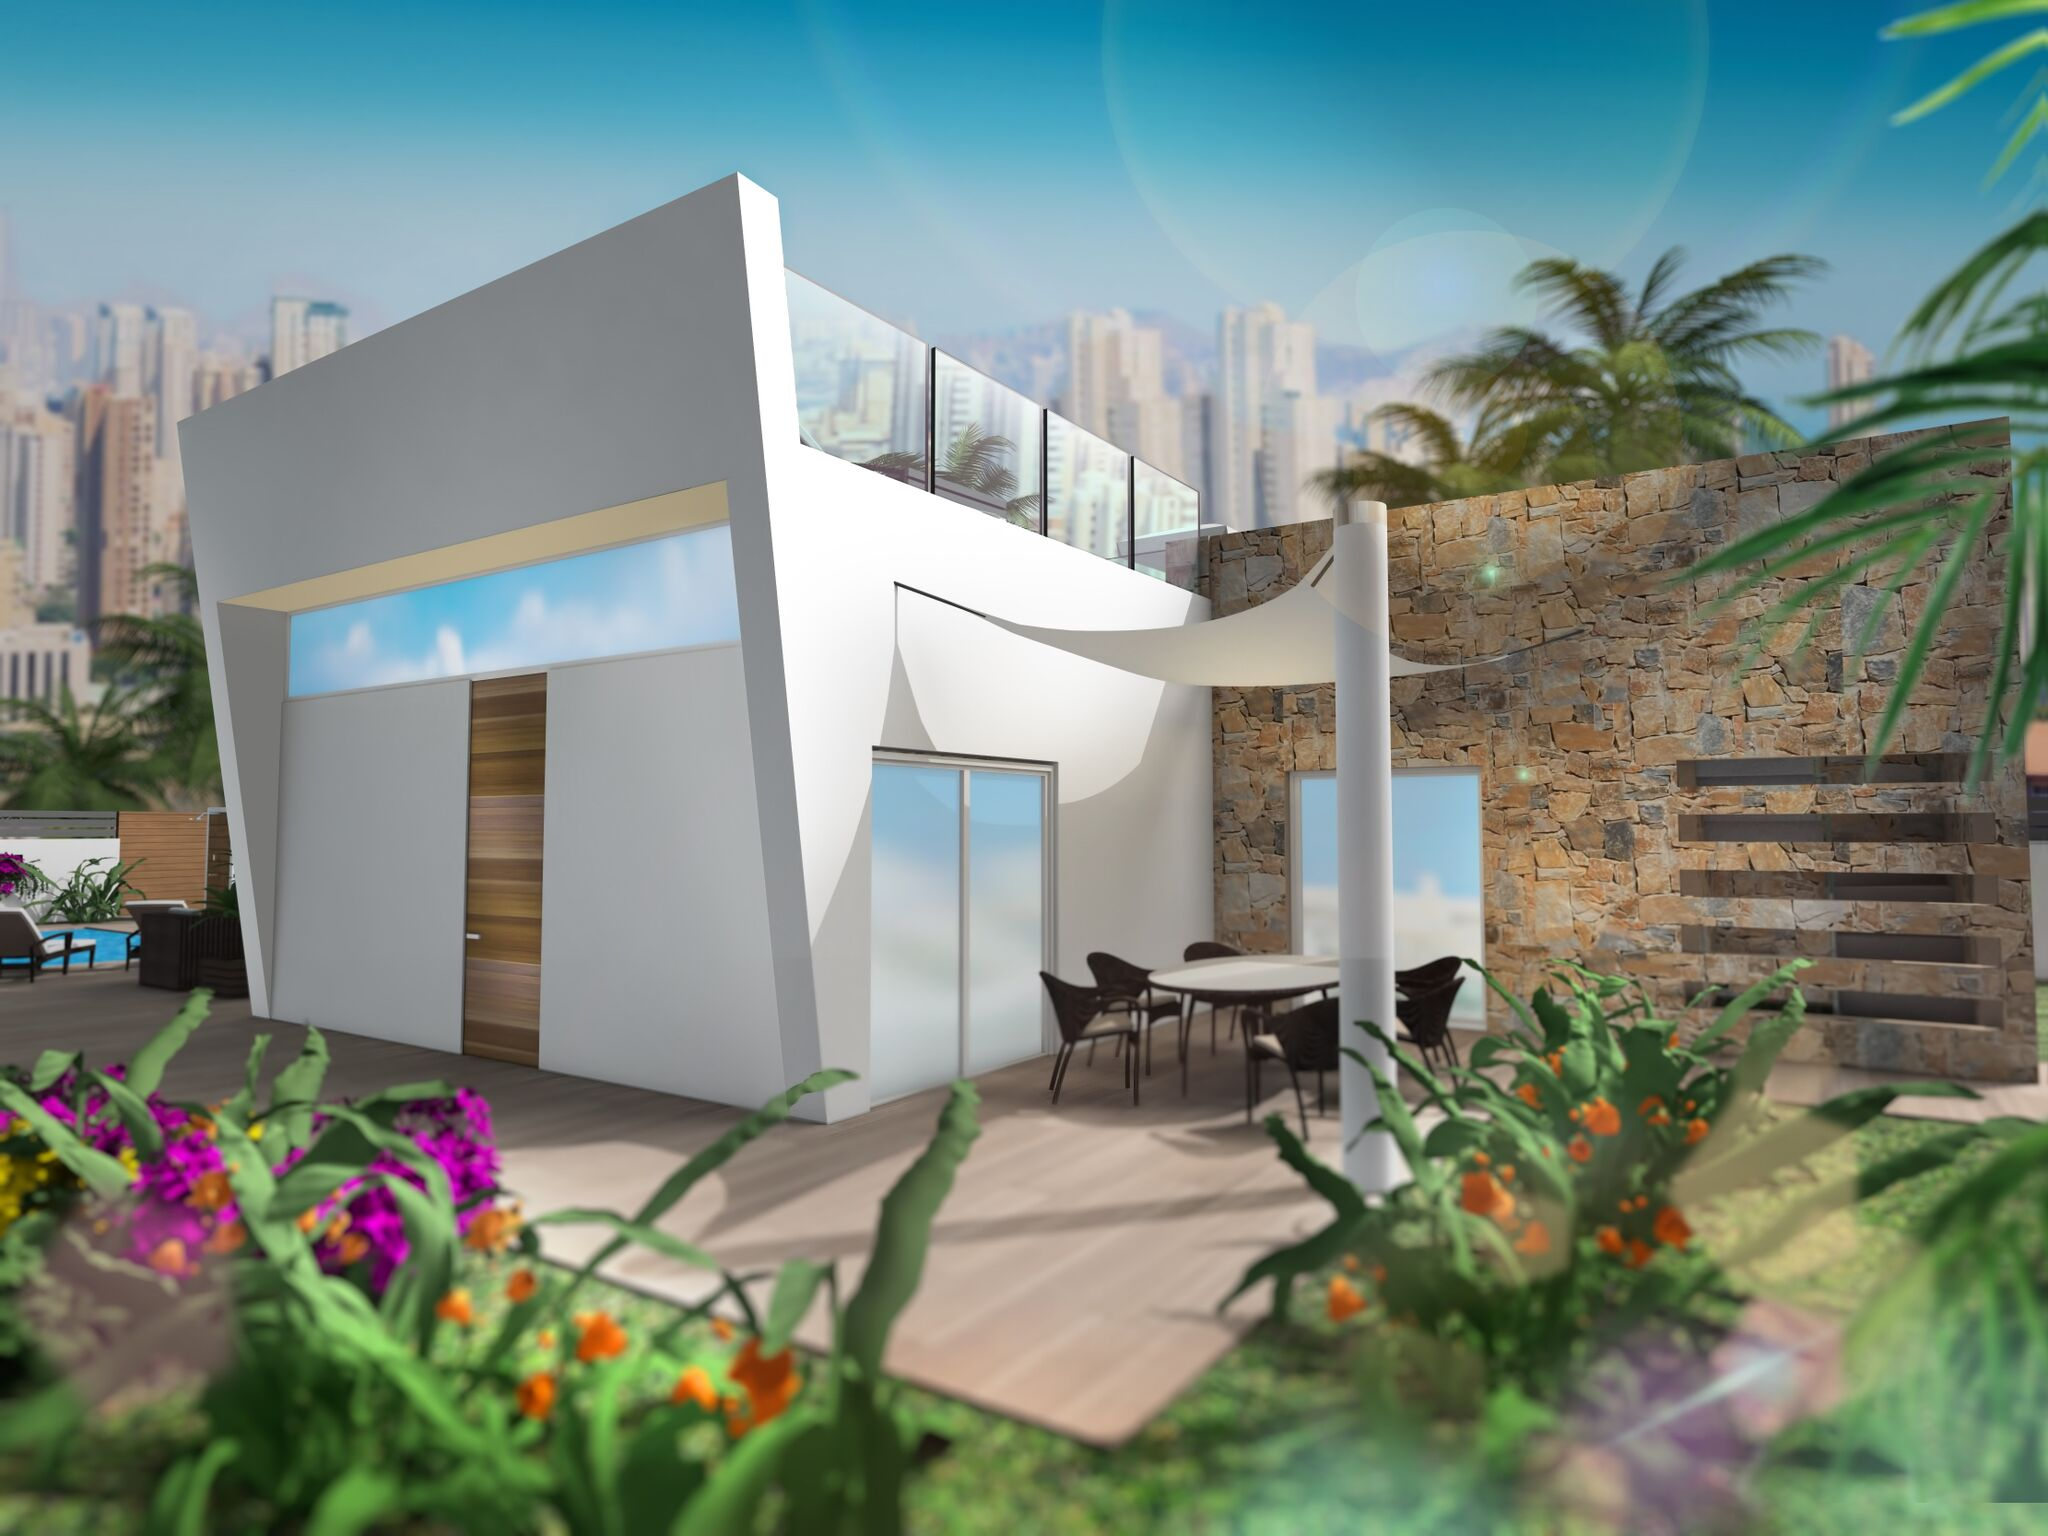 New Build Villas for sale in Benidorm